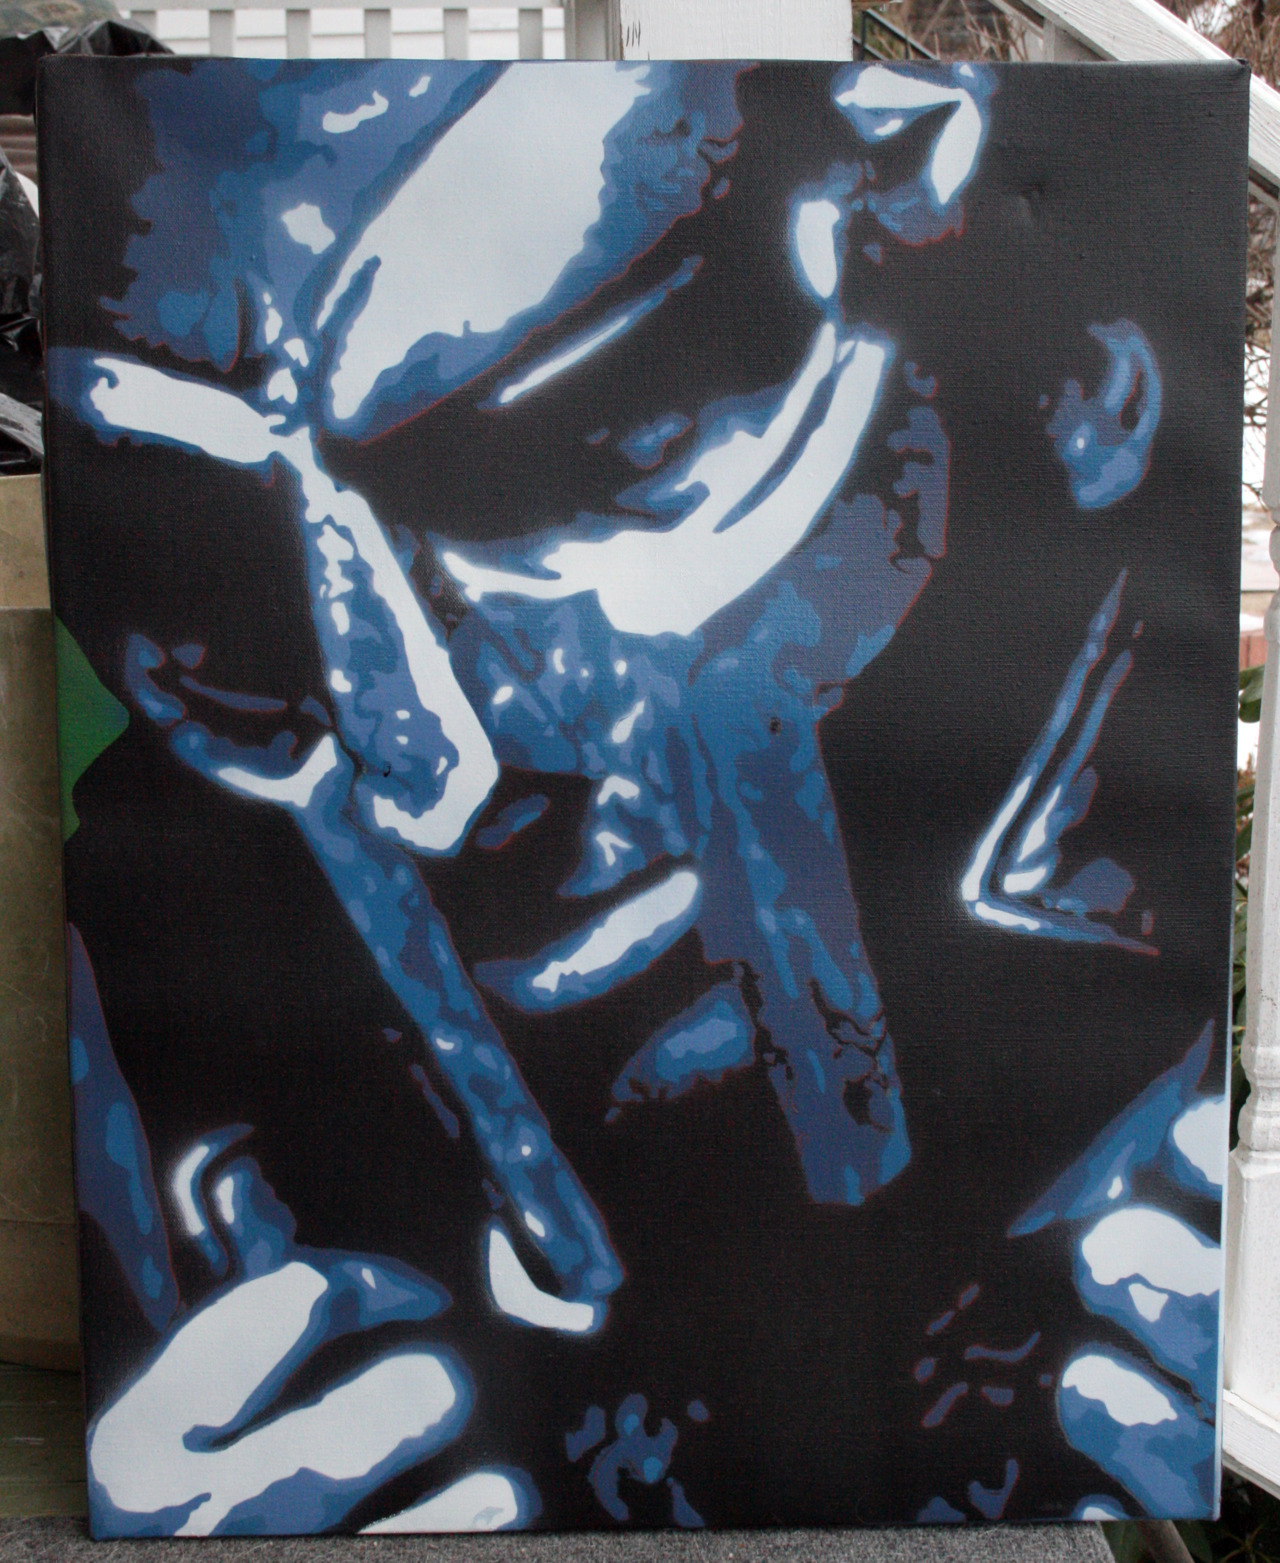 MF DOOM22x28 Spraypaint on Canvasvia 2009 facebook.com/derekzielinskiartist